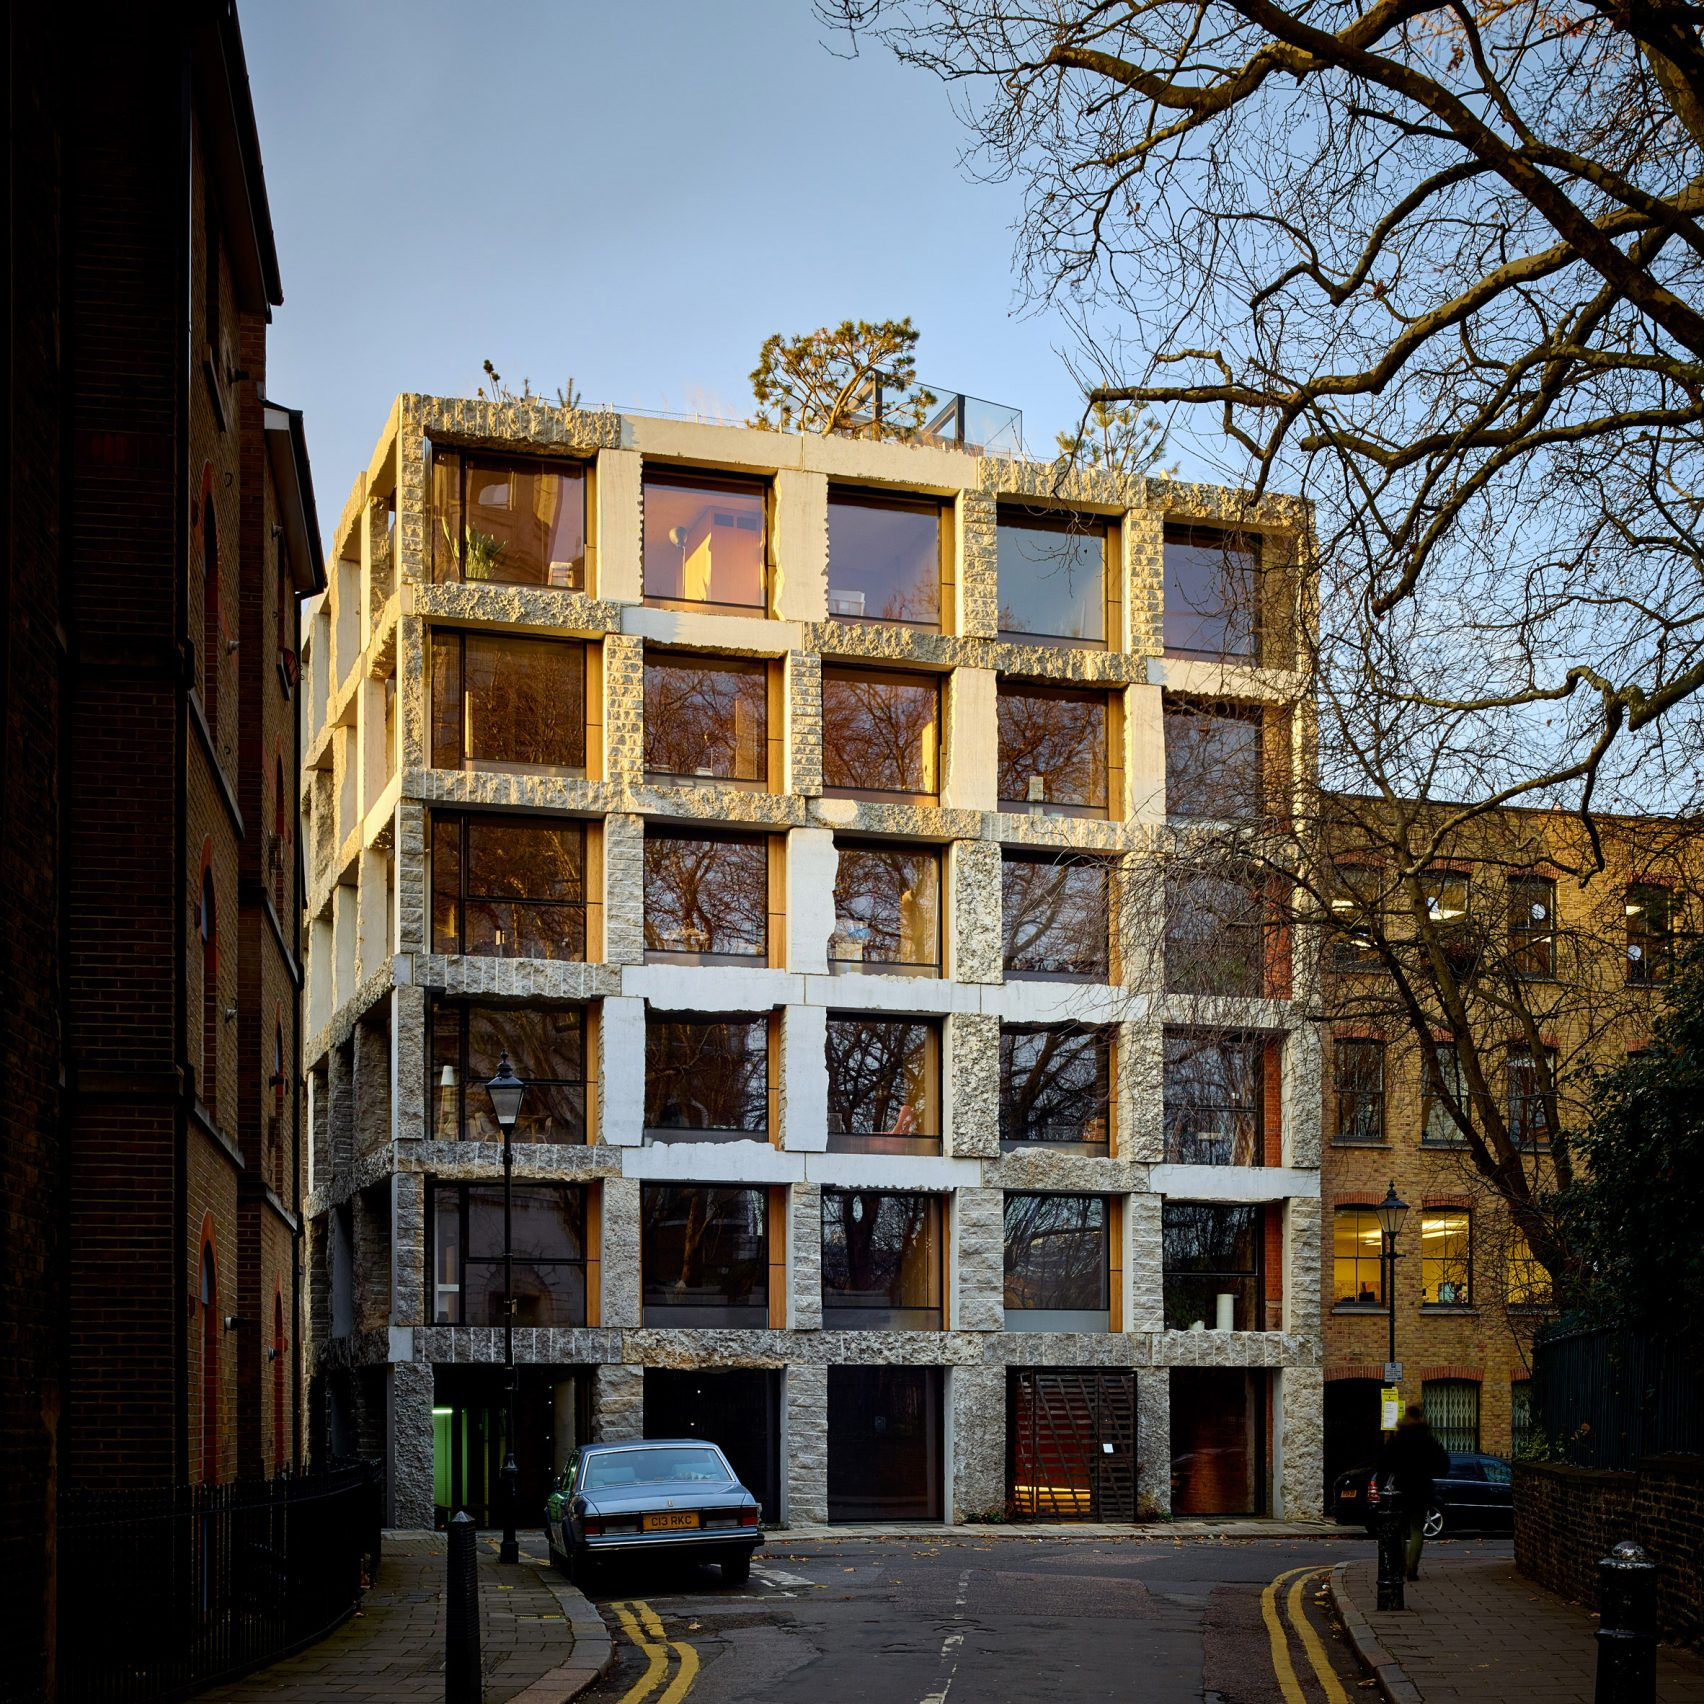 Apartment Flats: Architect Ordered To Demolish New Award-Winning Apartment